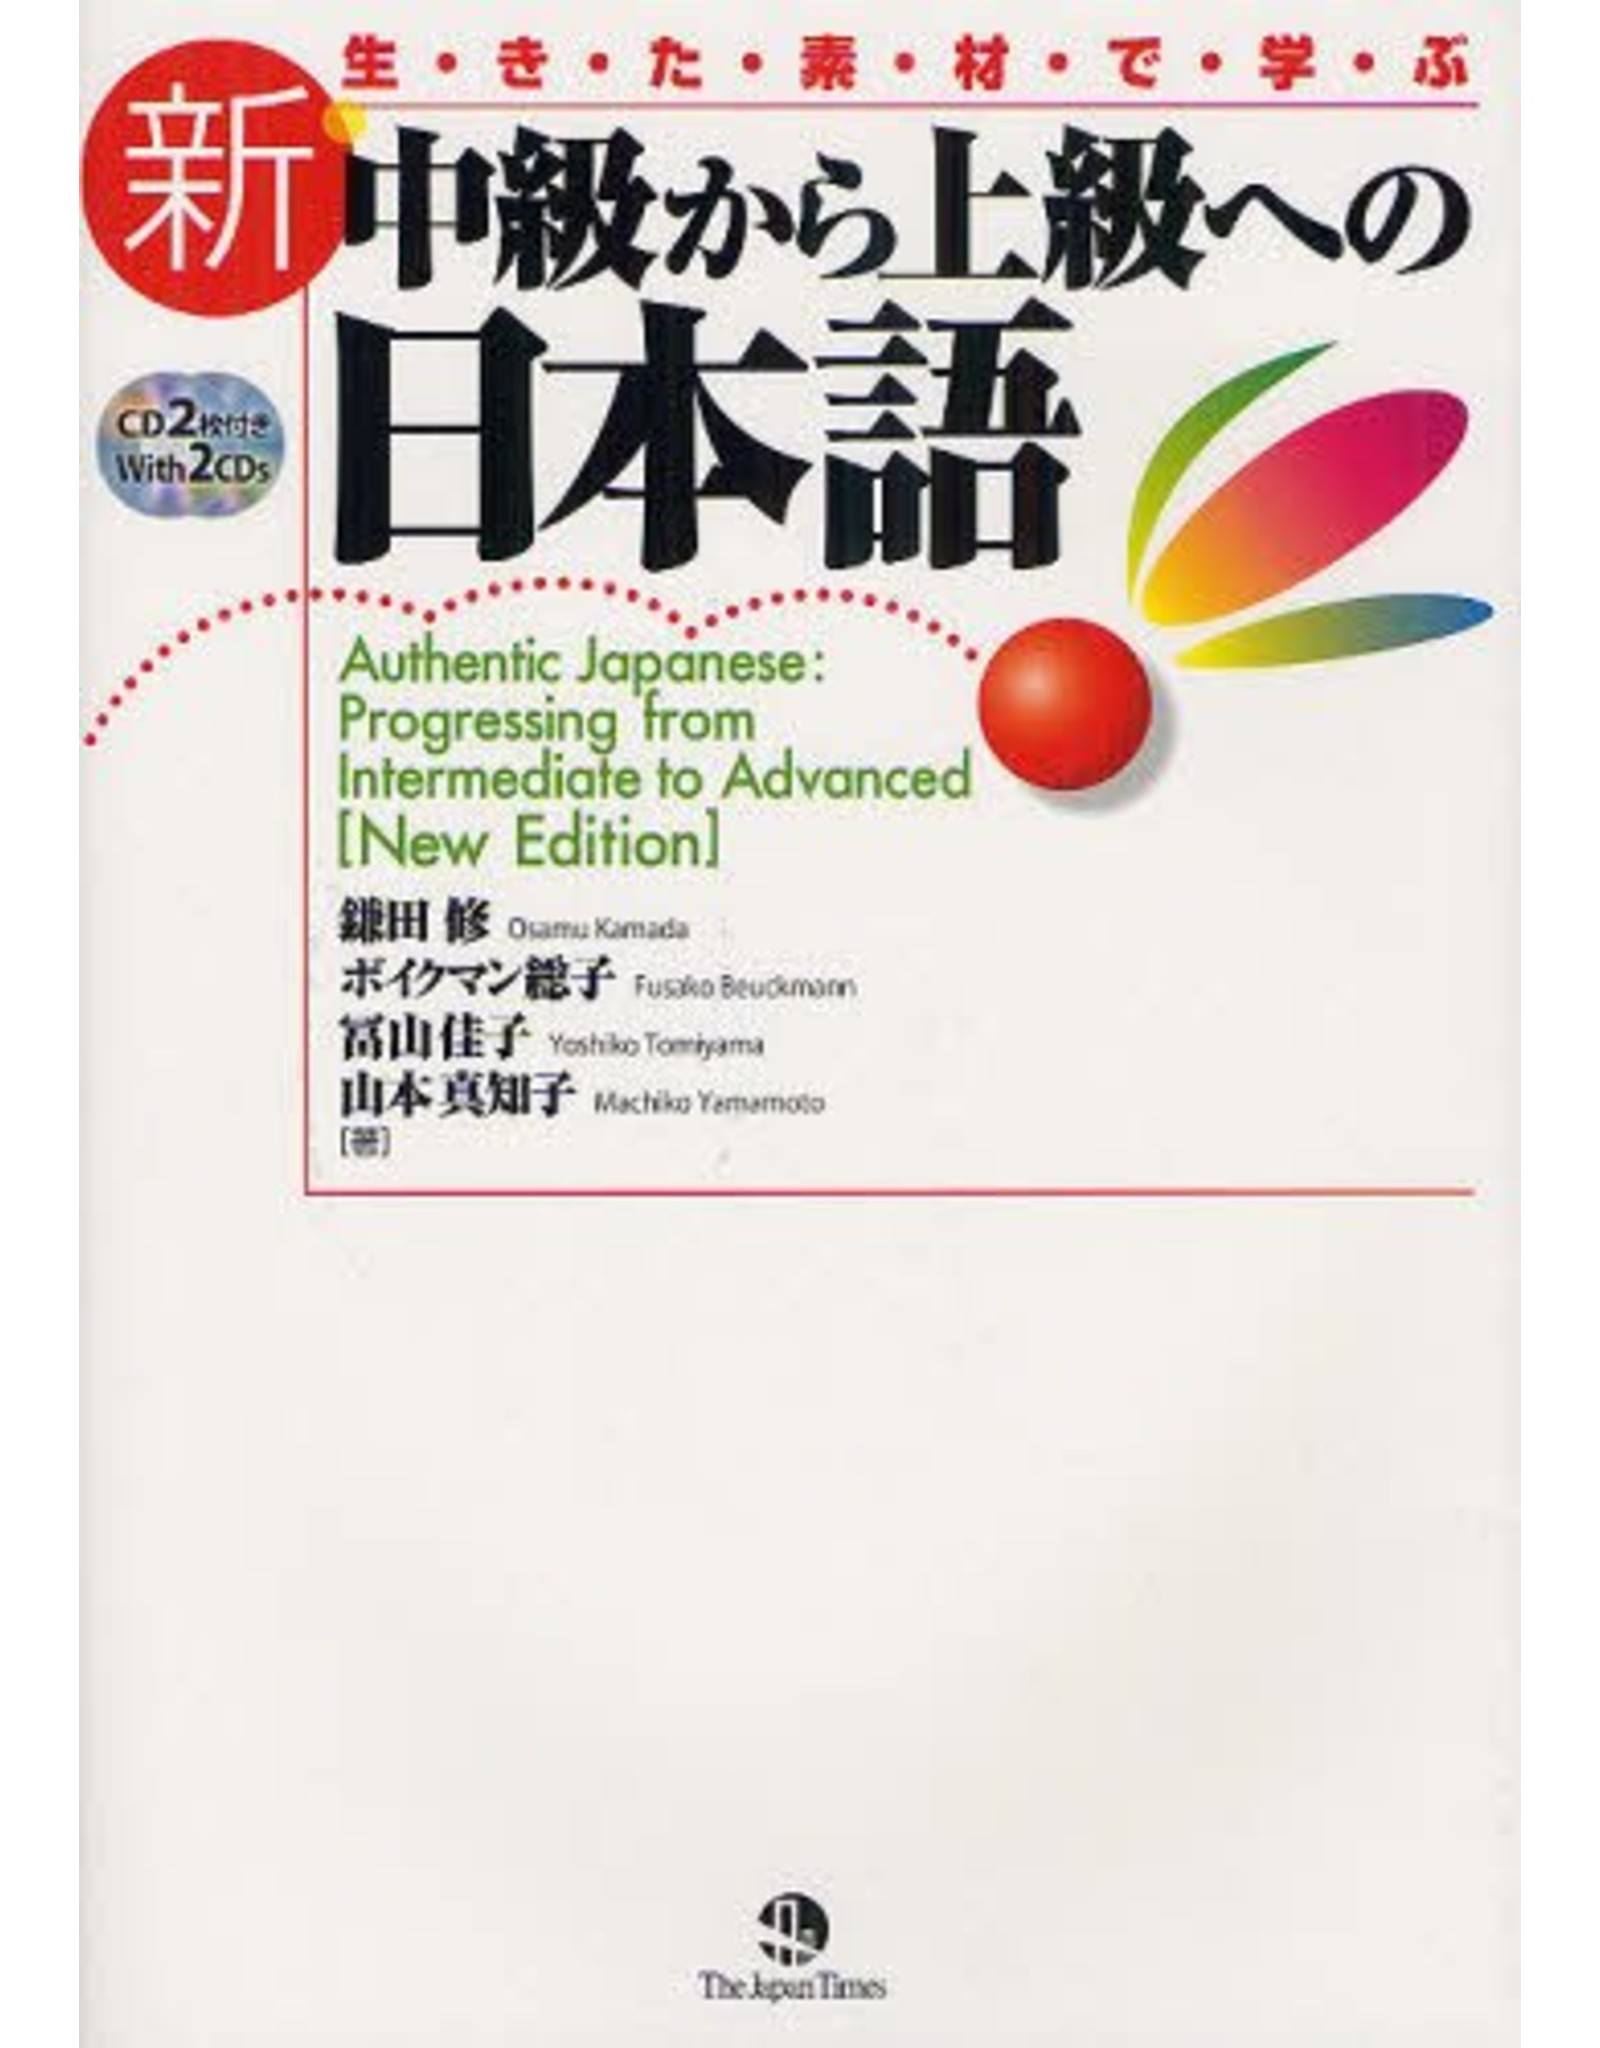 JAPAN TIMES AUTHENTIC JAPANESE: PROGRESSING FROM INTERMEDIATE TO ADVANCED [NEW EDITION] W/CDS